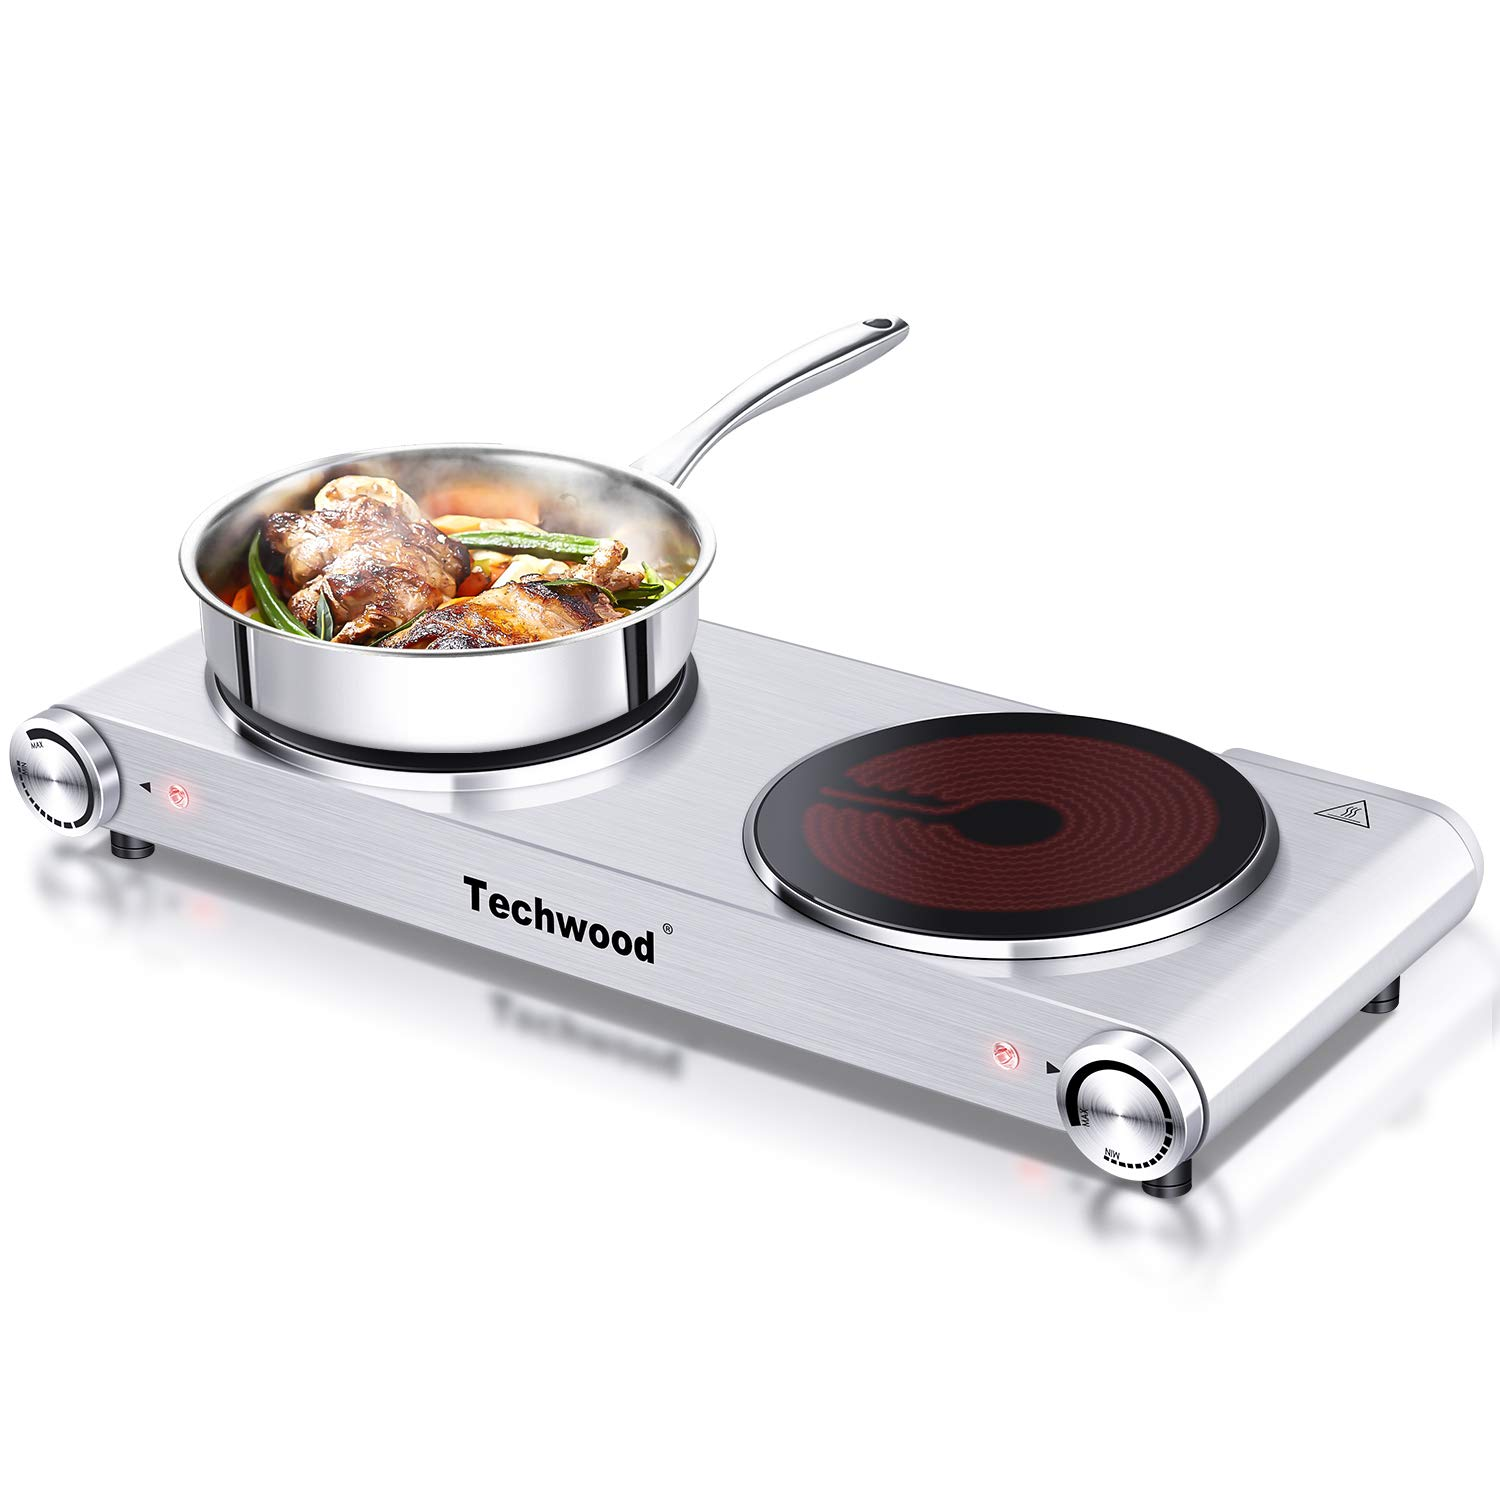 Techwood 1800 Watts Countertop Burner, Infrared Ceramic Double Cooktop (900W & 900W), Portable Electric Hot Plate, Stainless Steel, ES-3201C